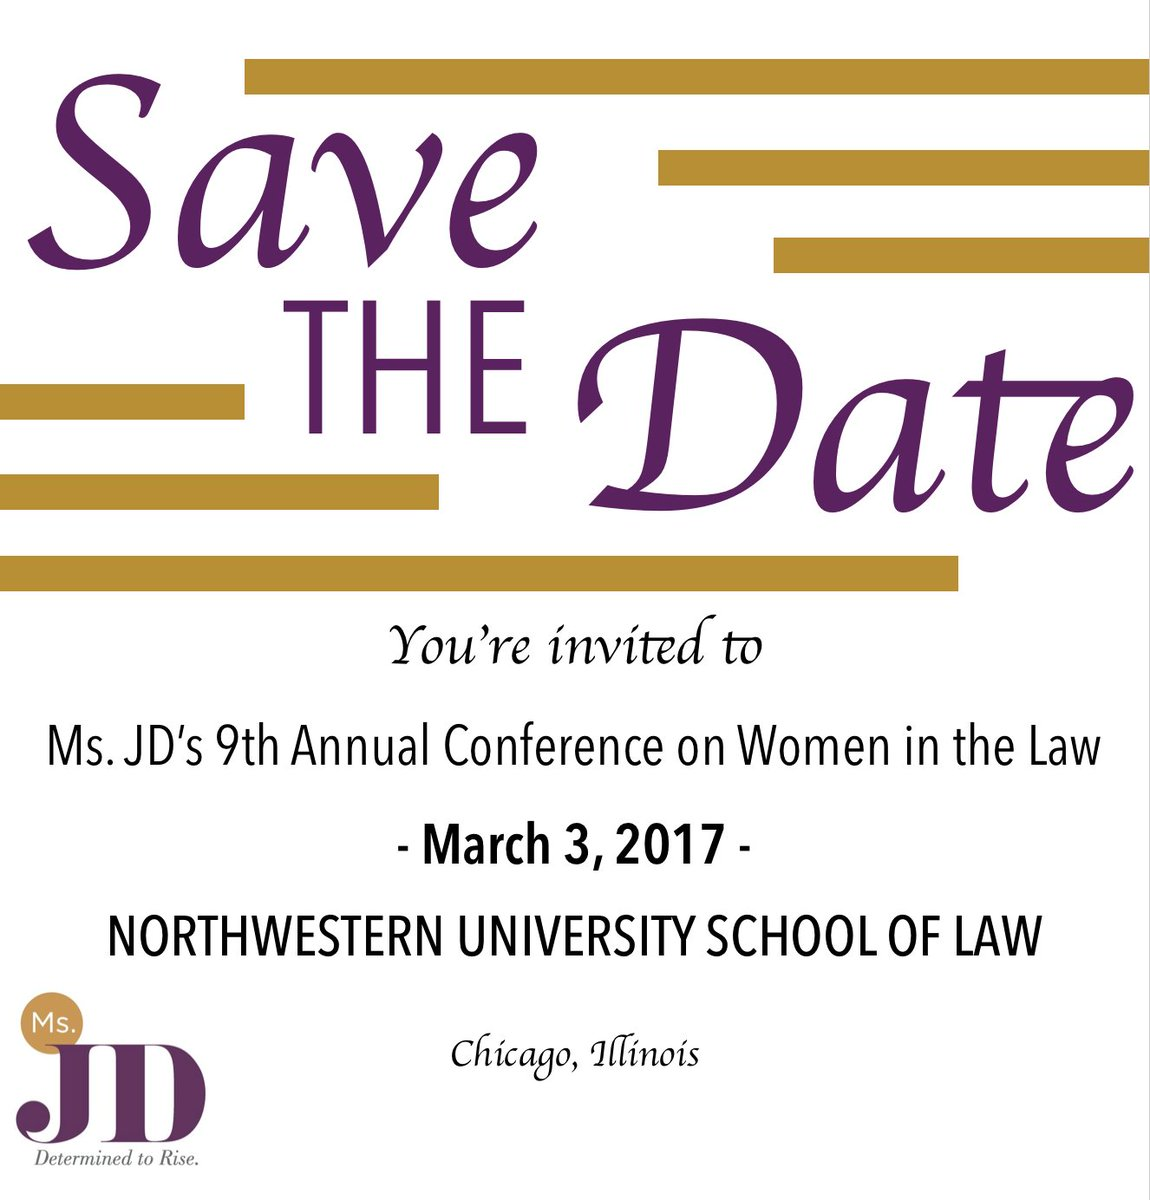 SAVE THE DATE - Ms. JD's Ninth Annual Conference on Women in the Law https://t.co/UL1IEOUYD1 https://t.co/qLuYwtLUEu